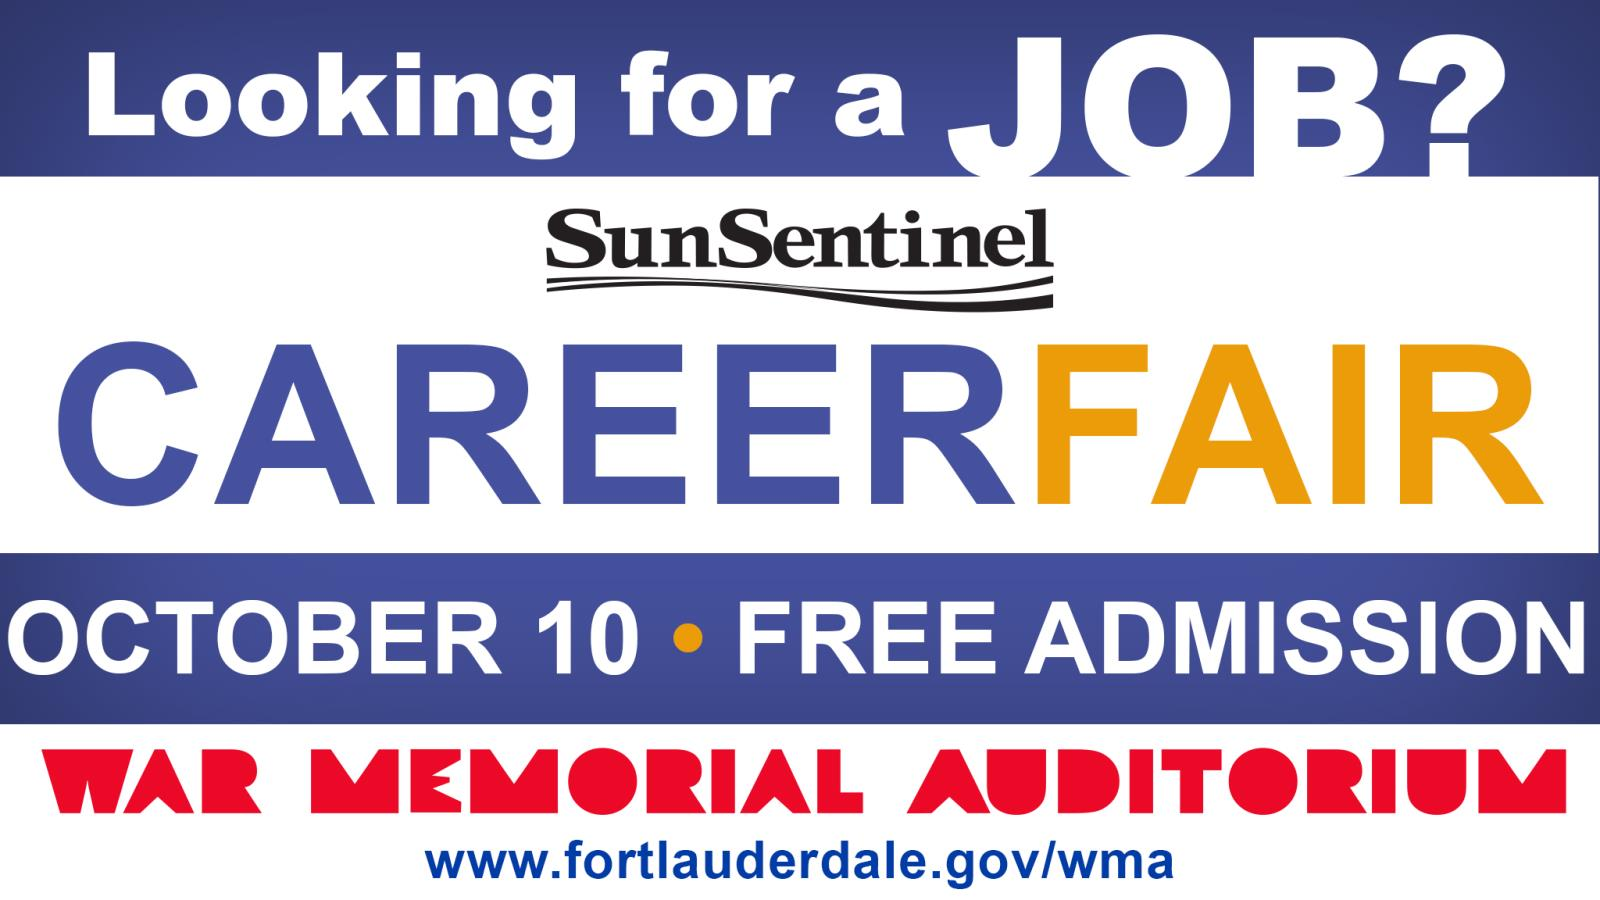 SunSentinelCarerrFair_Oct10_Monitor